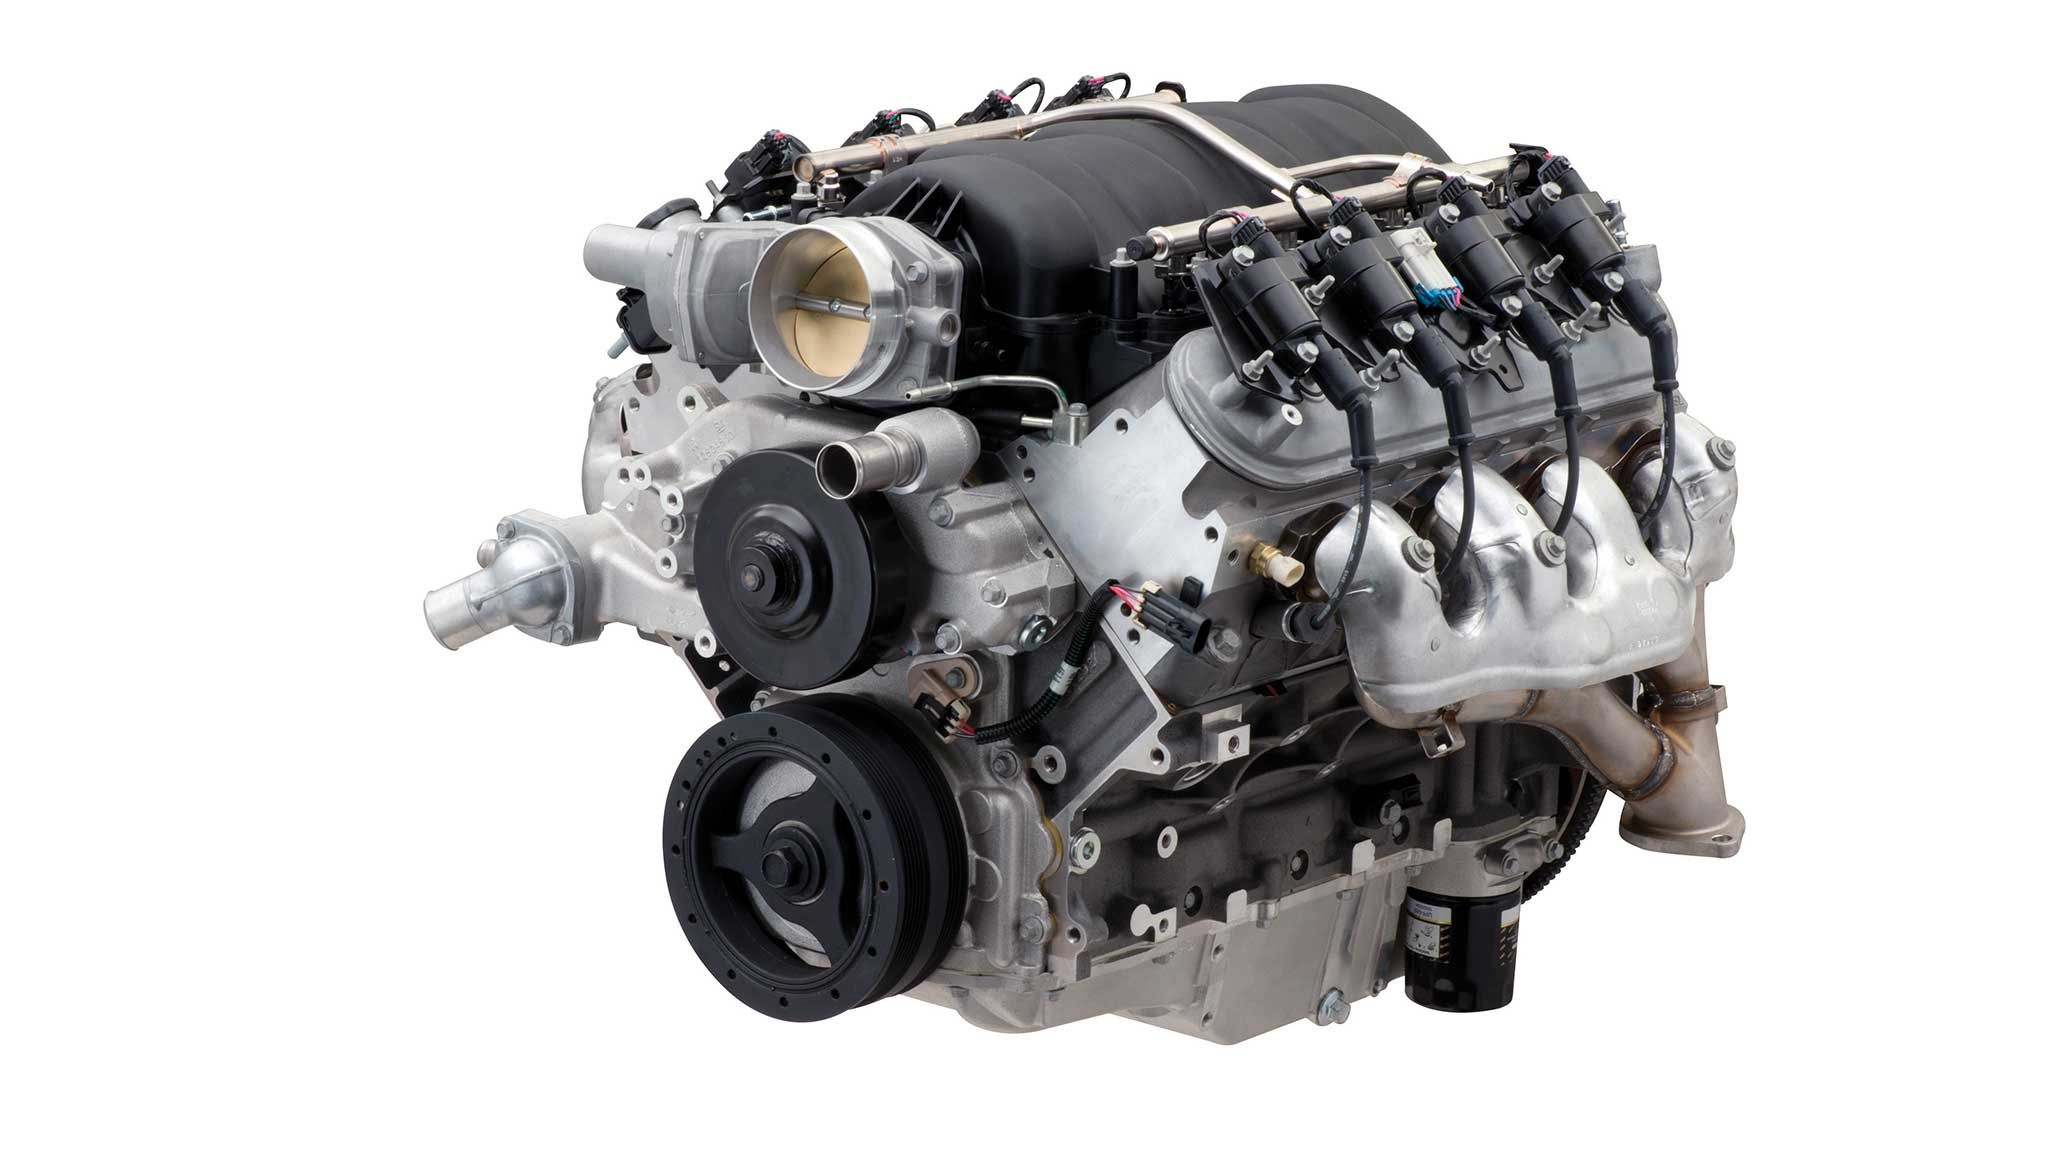 New Chevy Ls427 570 Crate Engine Is The Camaro Z 28 S Ls7 On Steroids In 2020 Crate Engines Camaro Z Crate Motors